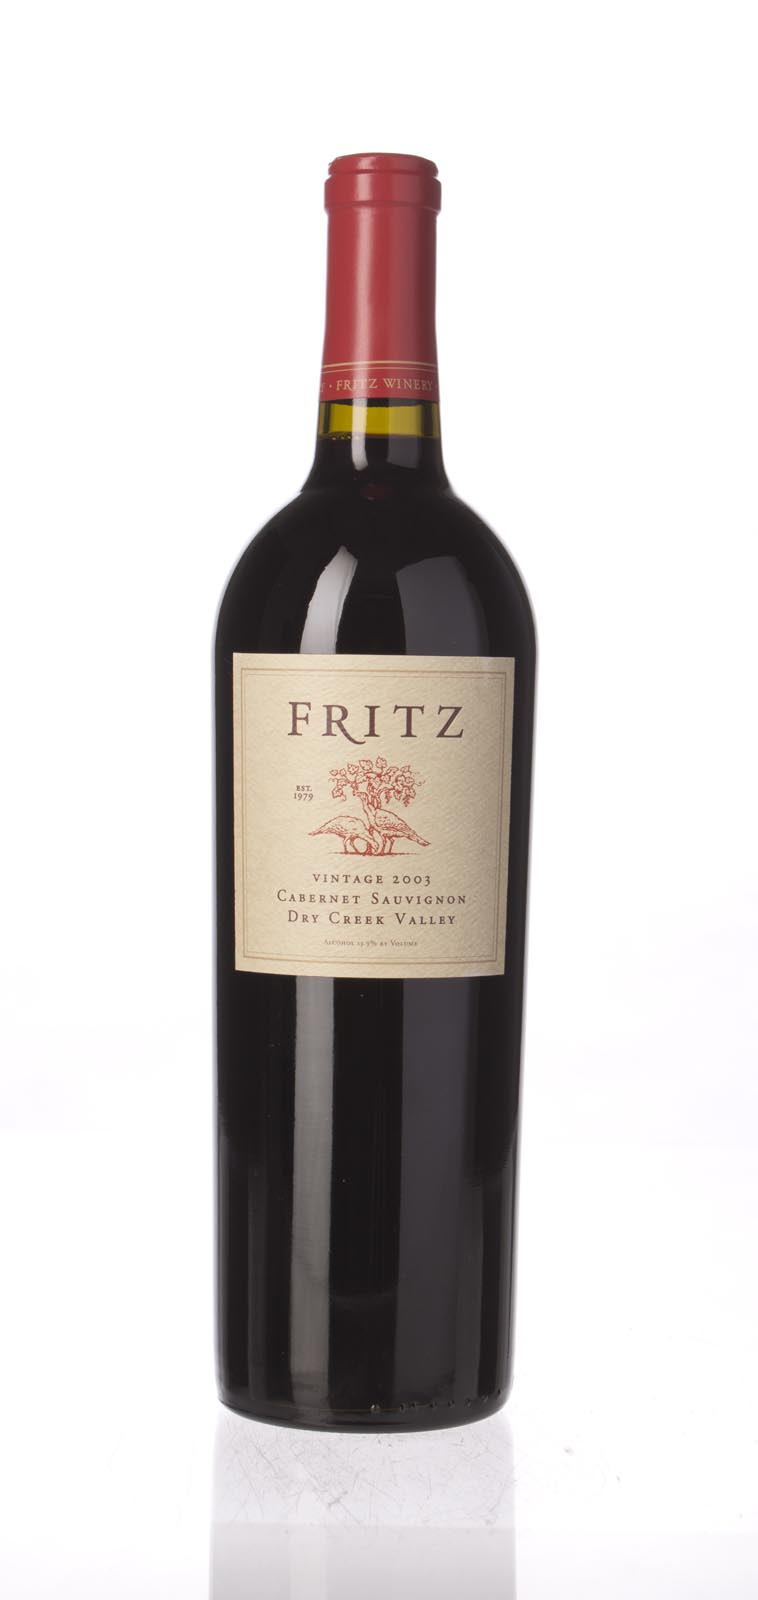 Fritz Cellars Cabernet Sauvignon Dry Creek Valley 2003, 750mL () from The BPW - Merchants of rare and fine wines.